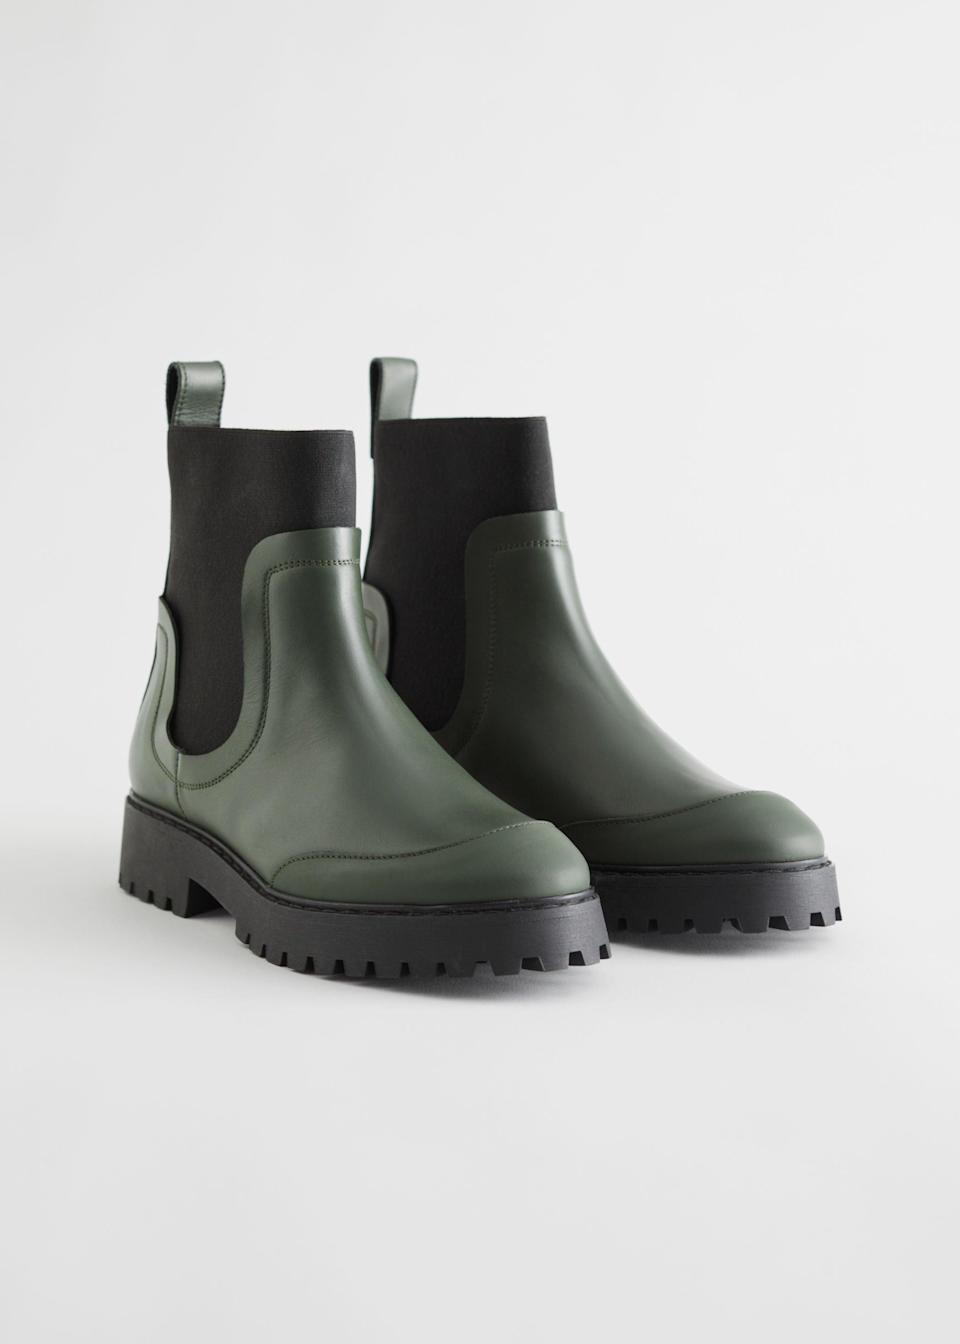 "<br><br><strong>& Other Stories</strong> Elasticated Leather Chelsea Boots, $, available at <a href=""https://go.skimresources.com/?id=30283X879131&url=https%3A%2F%2Fwww.stories.com%2Fen_usd%2Fshoes%2Fboots%2Fchelseaboots%2Fproduct.elasticated-leather-chelsea-boots-green.0893443003.html"" rel=""nofollow noopener"" target=""_blank"" data-ylk=""slk:& Other Stories"" class=""link rapid-noclick-resp"">& Other Stories</a>"